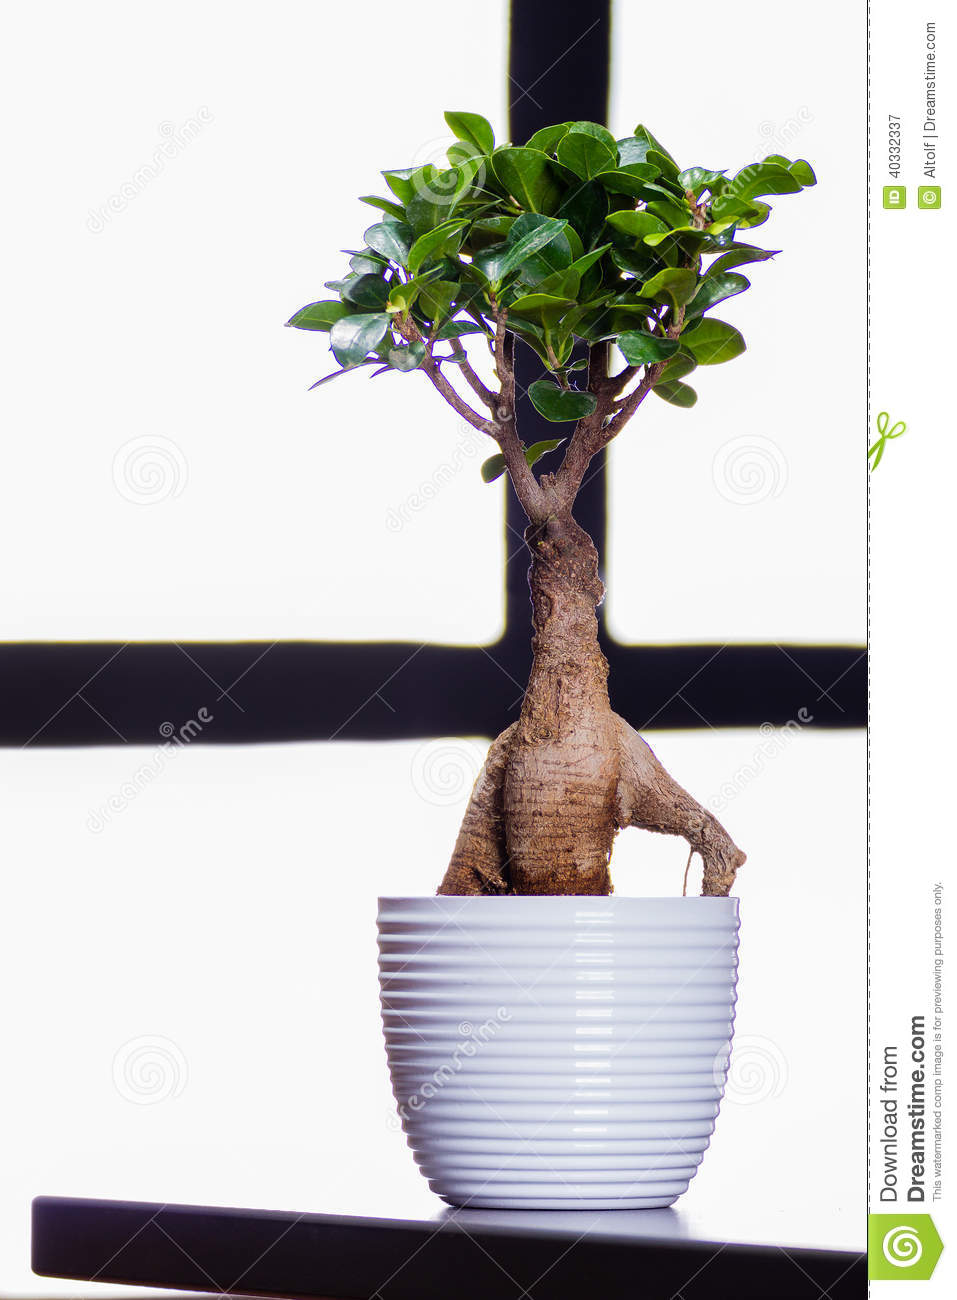 Bonsai Tree On A Office Table Stock Photo Image 40332337